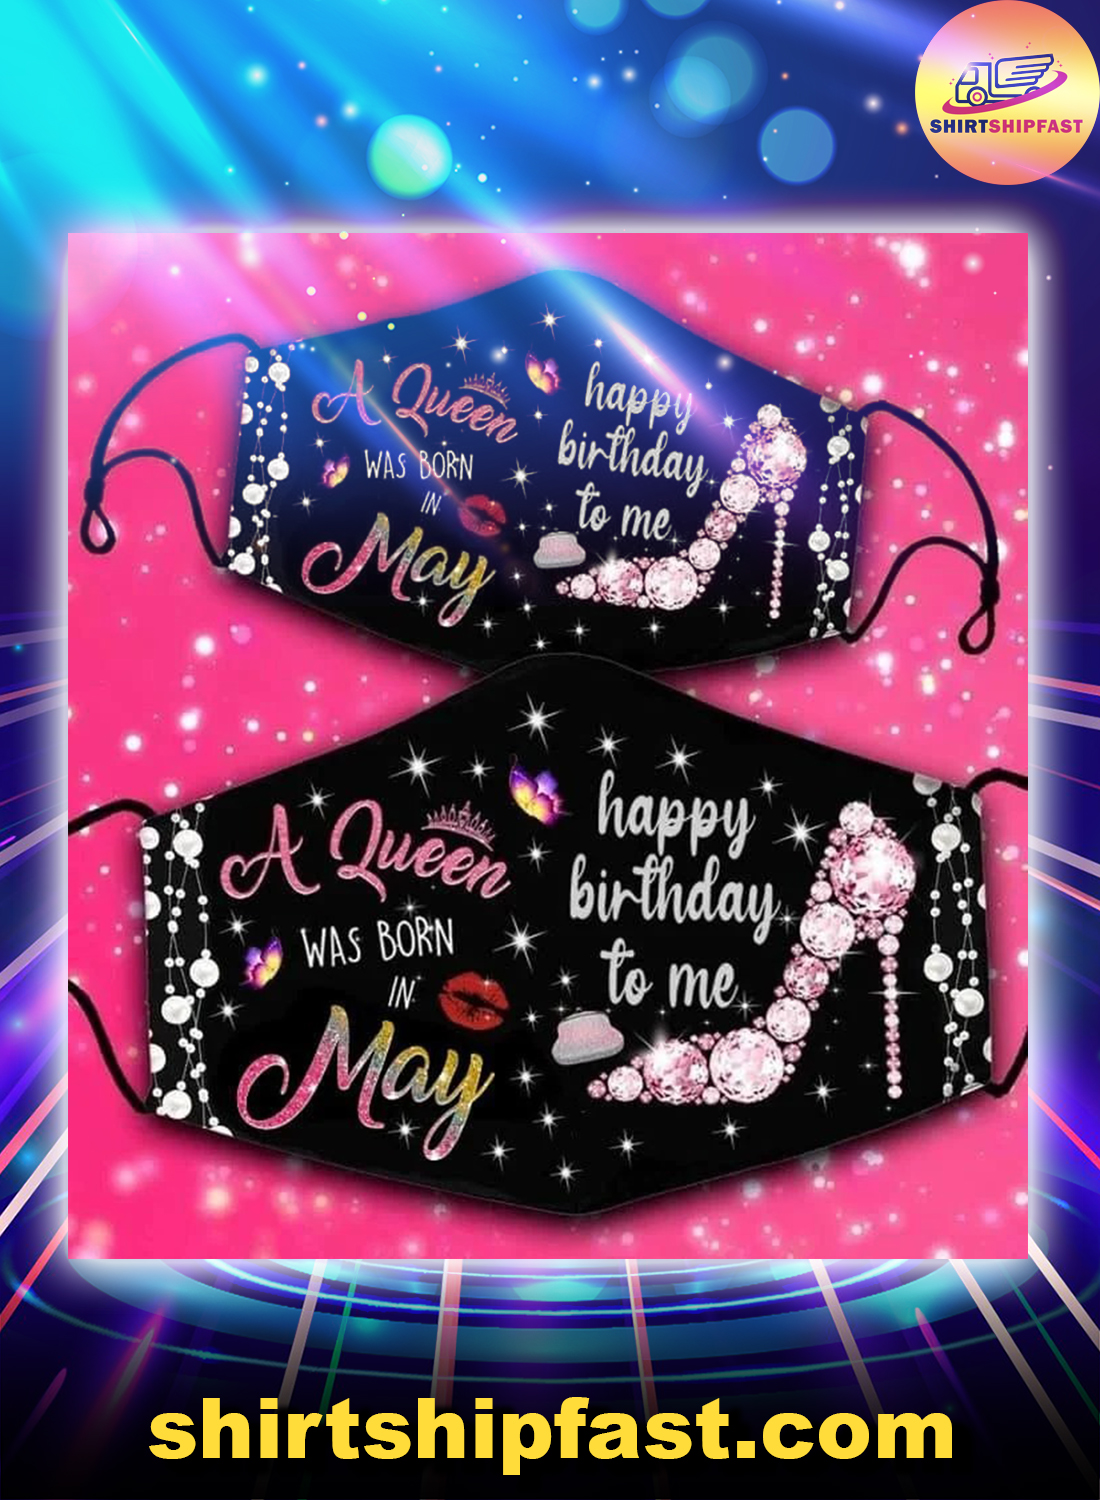 A queen was born in May happy birthday to me face mask - Picture 1